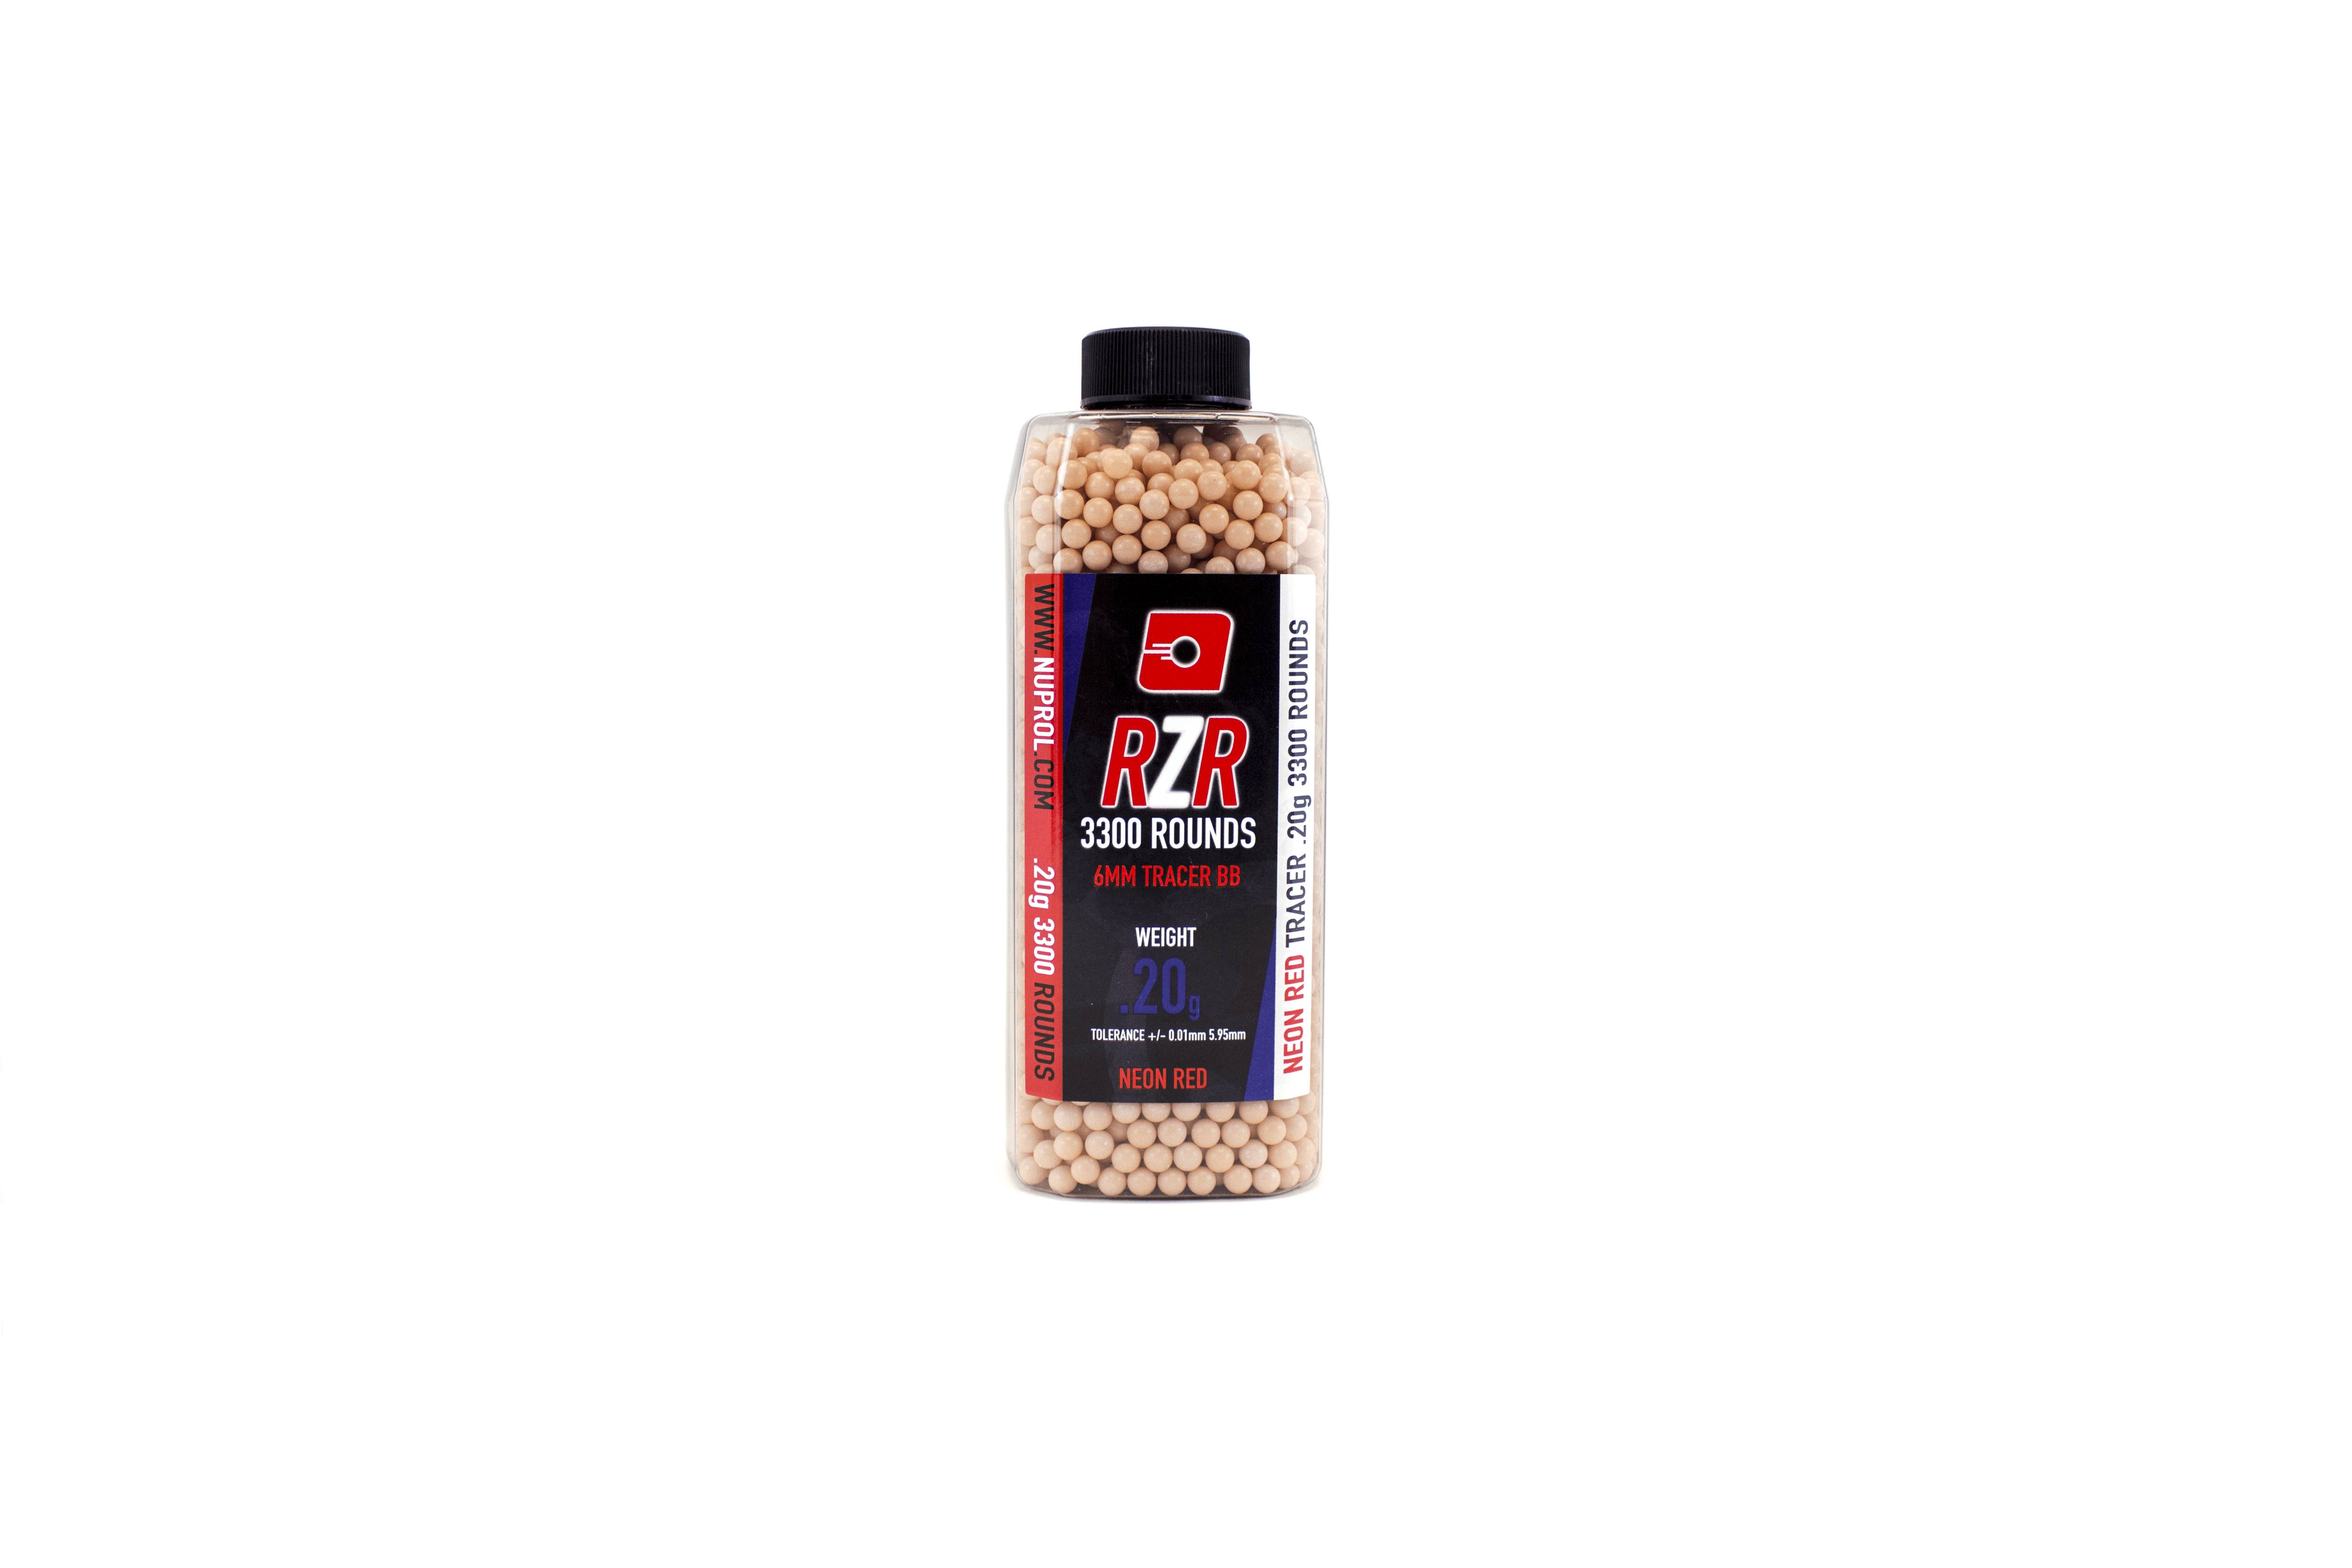 Nuprol RZR 3300Round 0.20G Red Tracer BB's product image